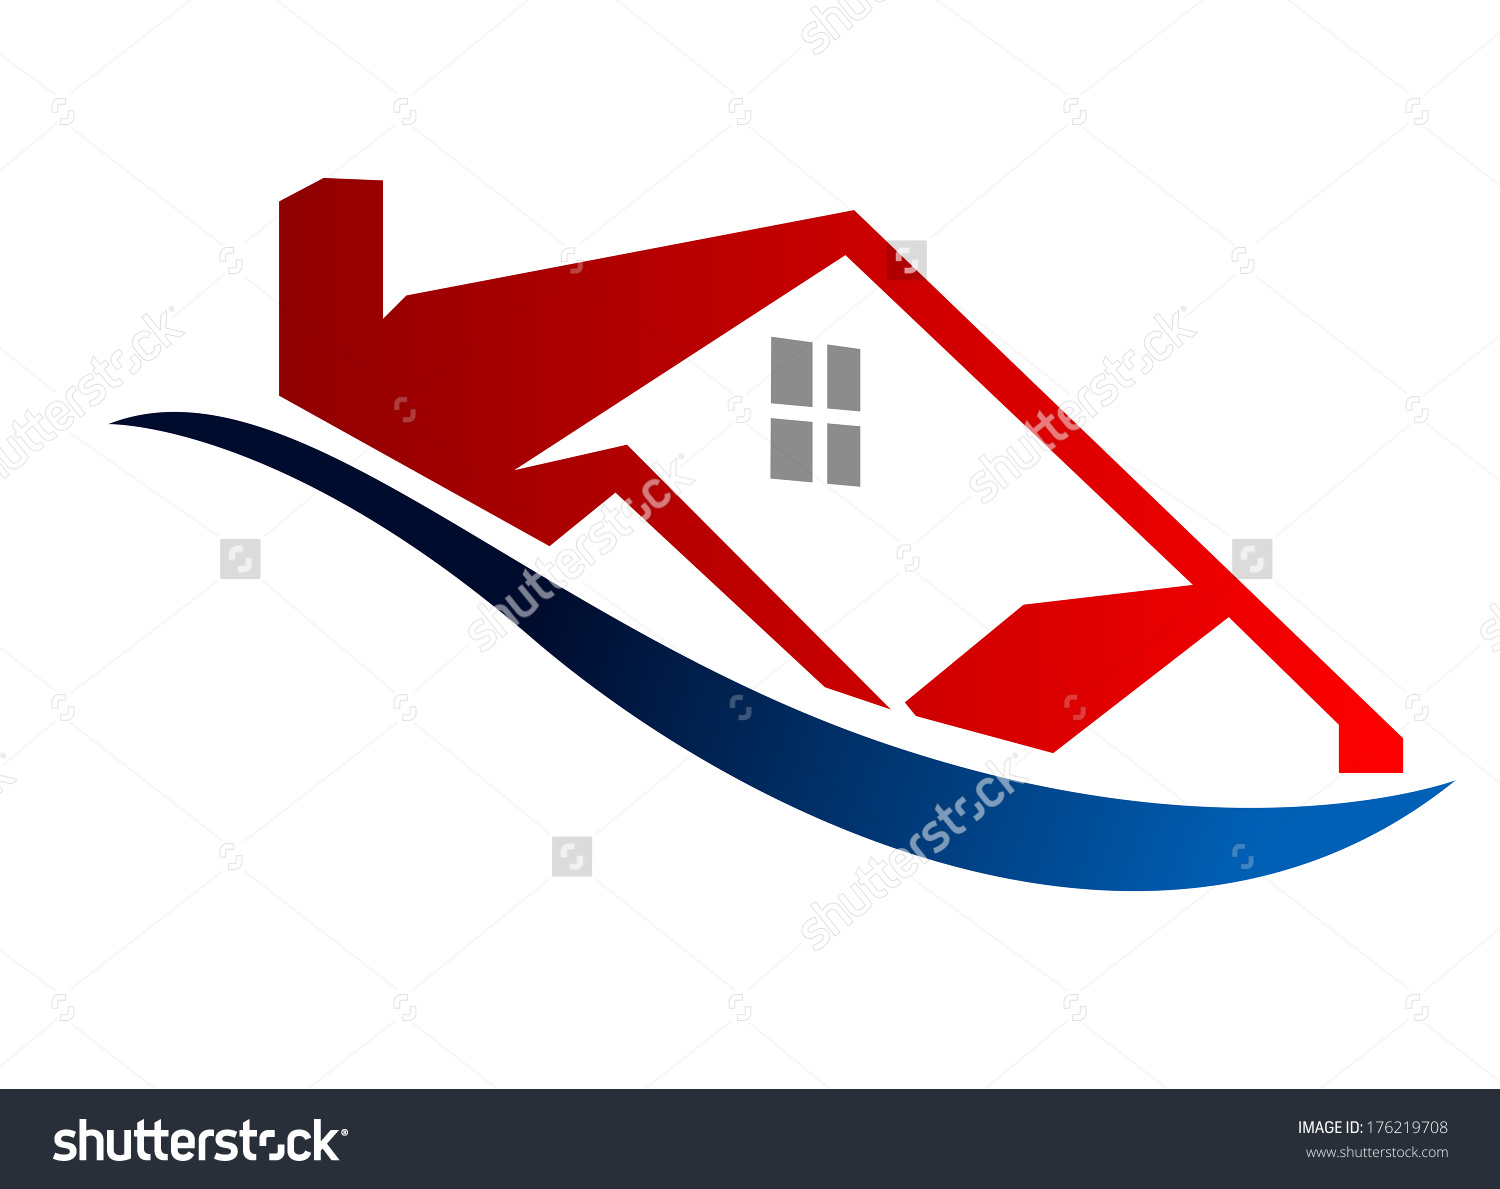 Cartoon Illustration Symbol Depicting Eco House Stock Vector.